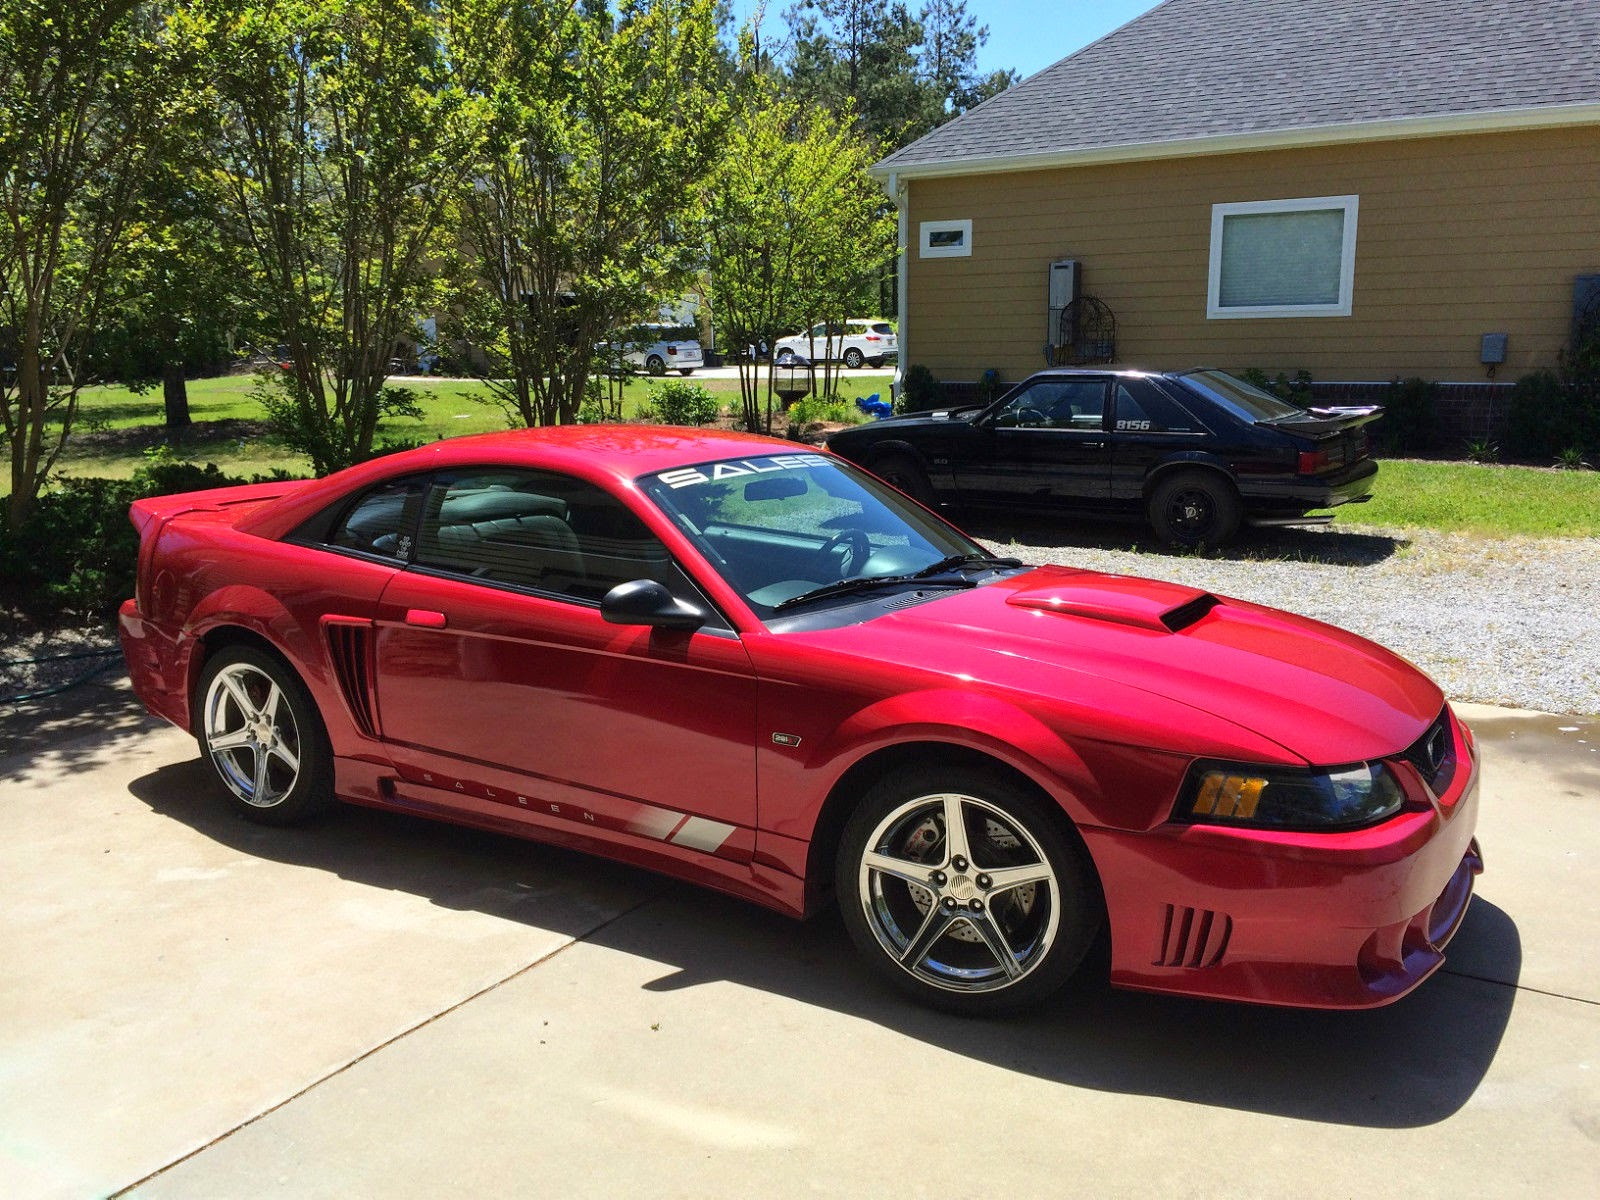 2002 ford mustang saleen s281 coupe for sale american muscle cars. Black Bedroom Furniture Sets. Home Design Ideas